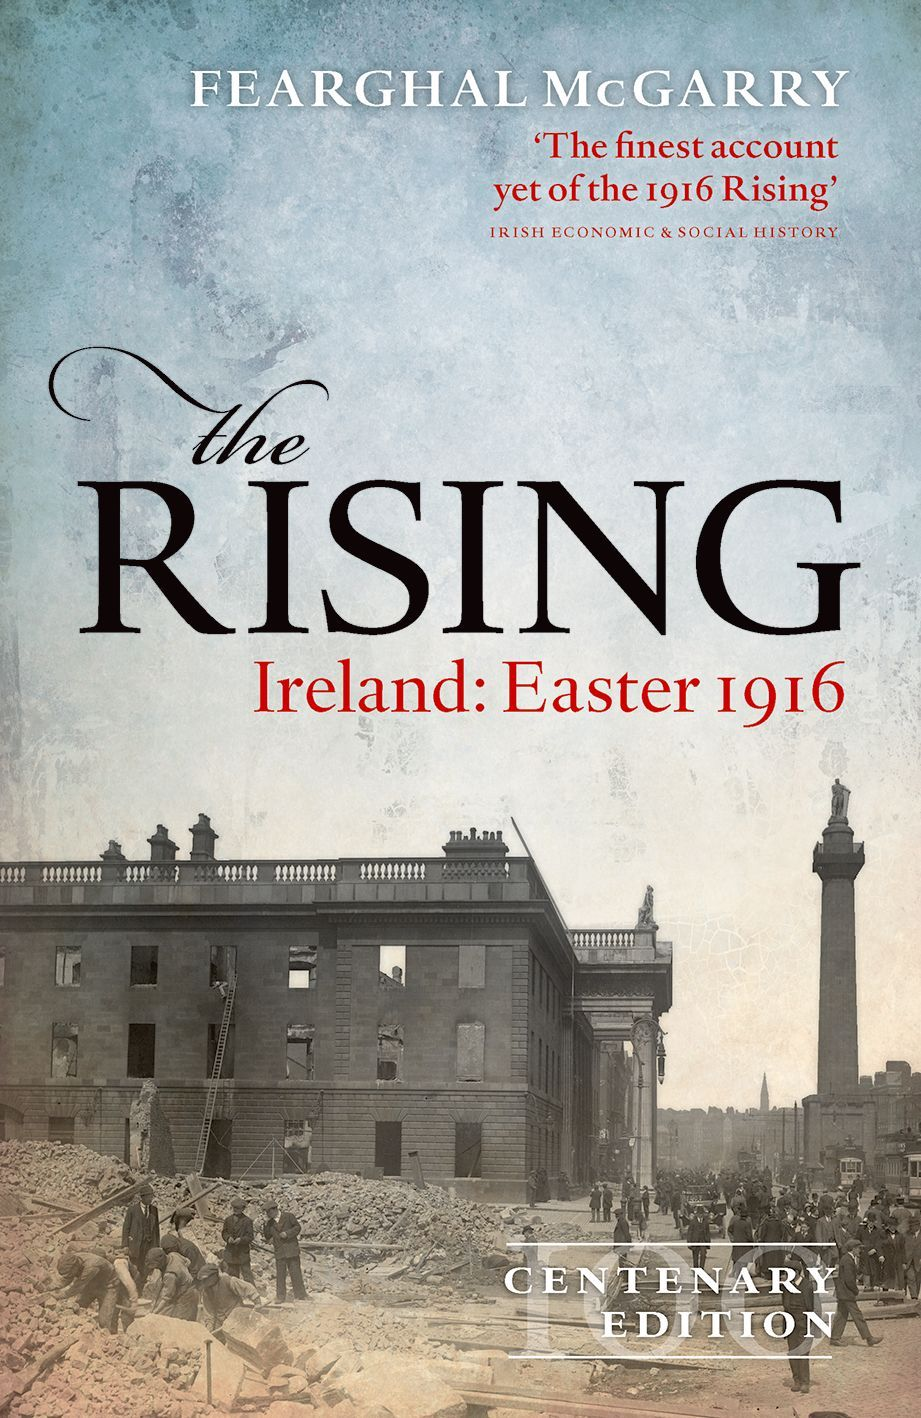 Review - The Rising: Ireland: Easter 1916 by Fearghal McGarry